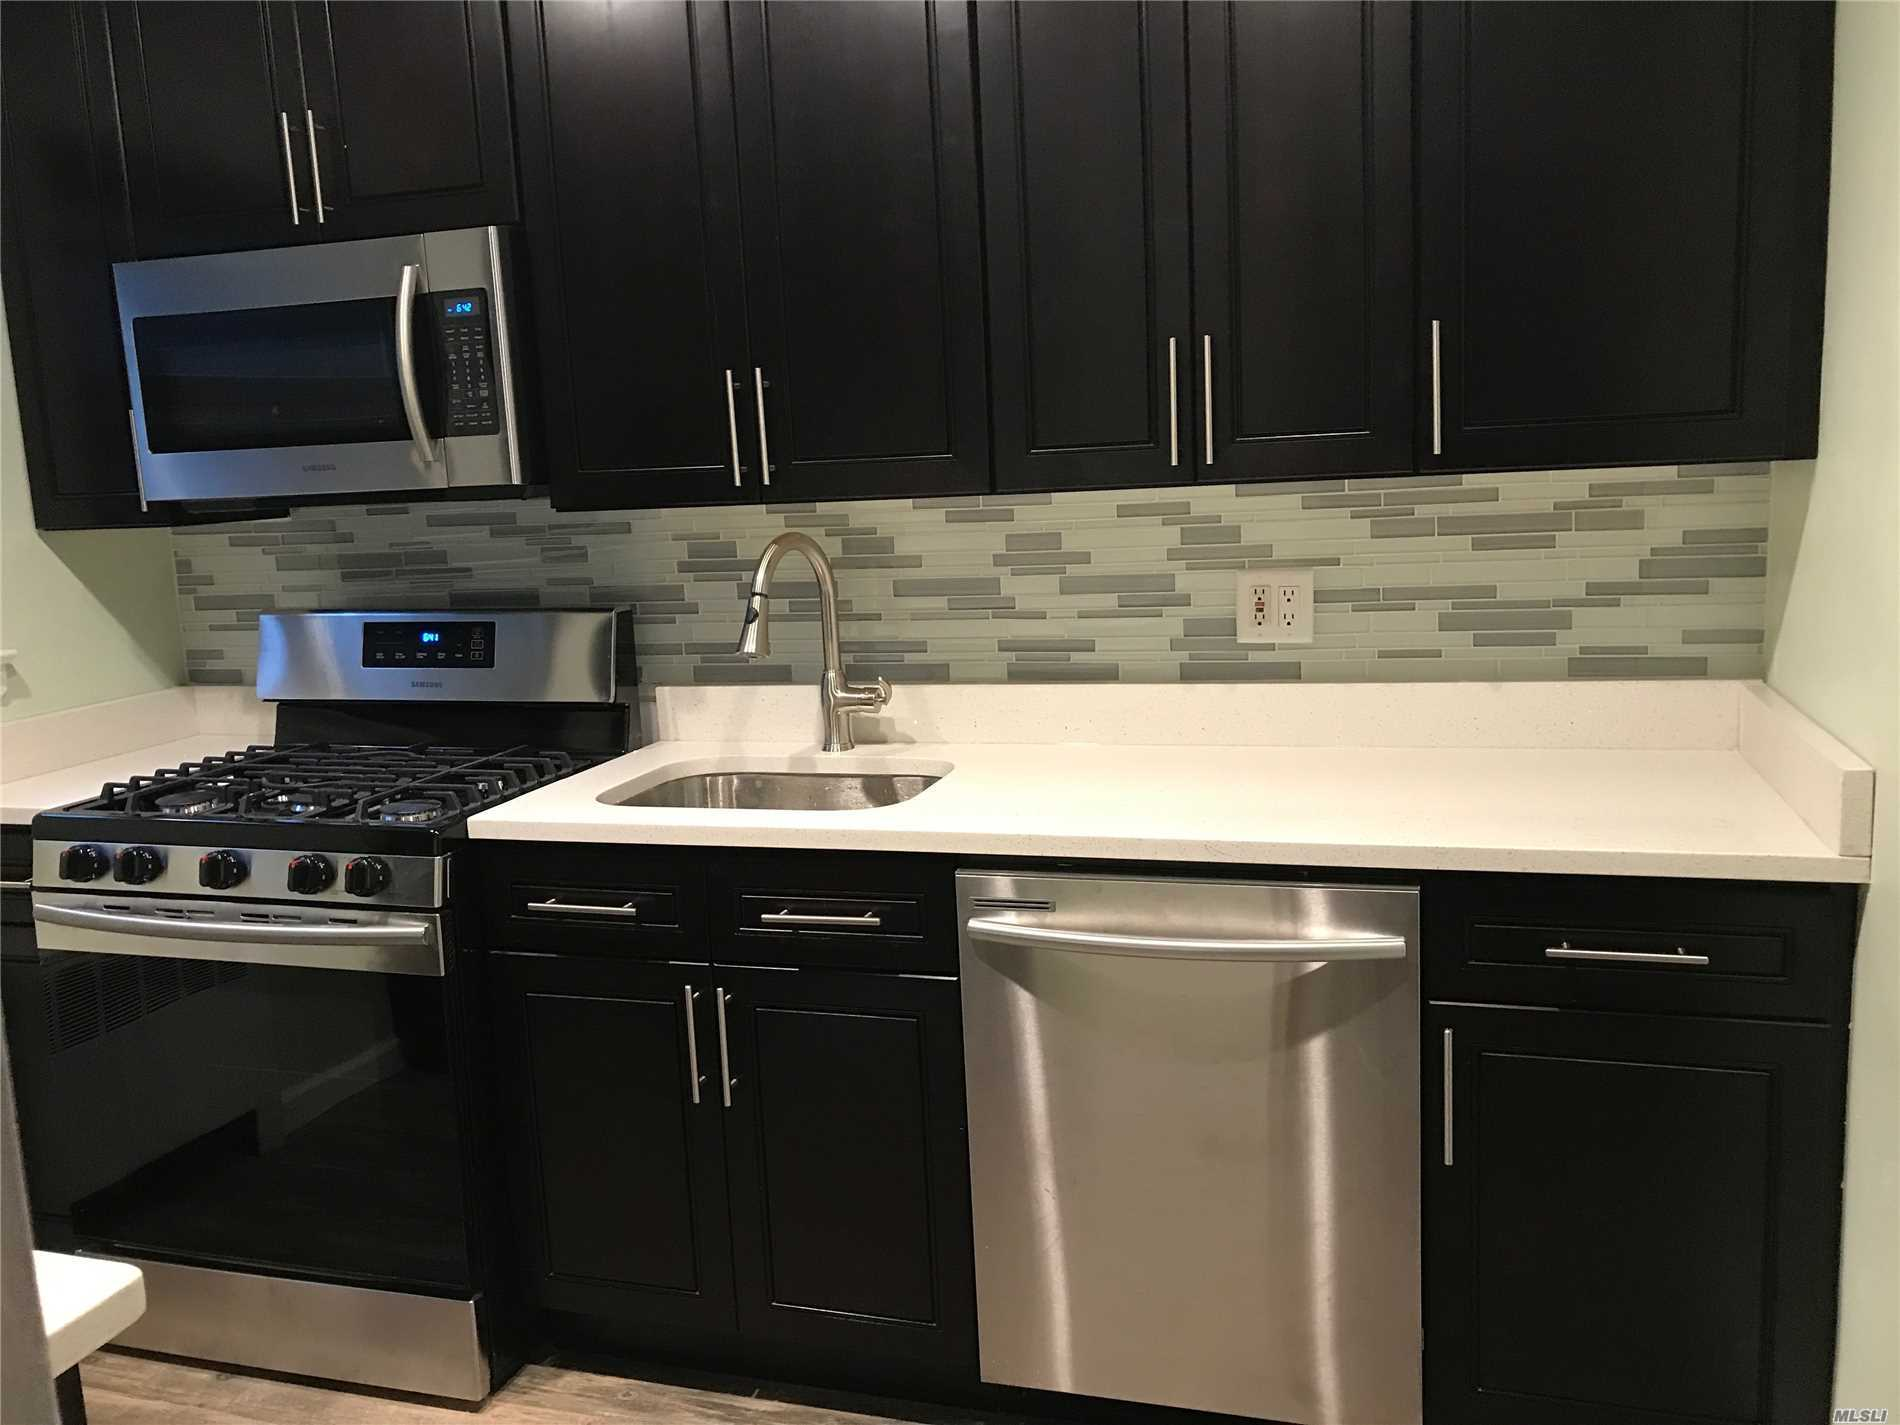 2 Bedroom Lower Garden Beauty Featuring Renovated Bath With Porcelain Tile, Fully Renovated Kitchen With Stainless Steel Appliances And Granite Counter Tops, Beautiful Hardwood Floors, Corner Unit with Additional Windows,  Pets Ok! Private Entrance, Close To Shops and Transportation, Can Sublet After 2 Years